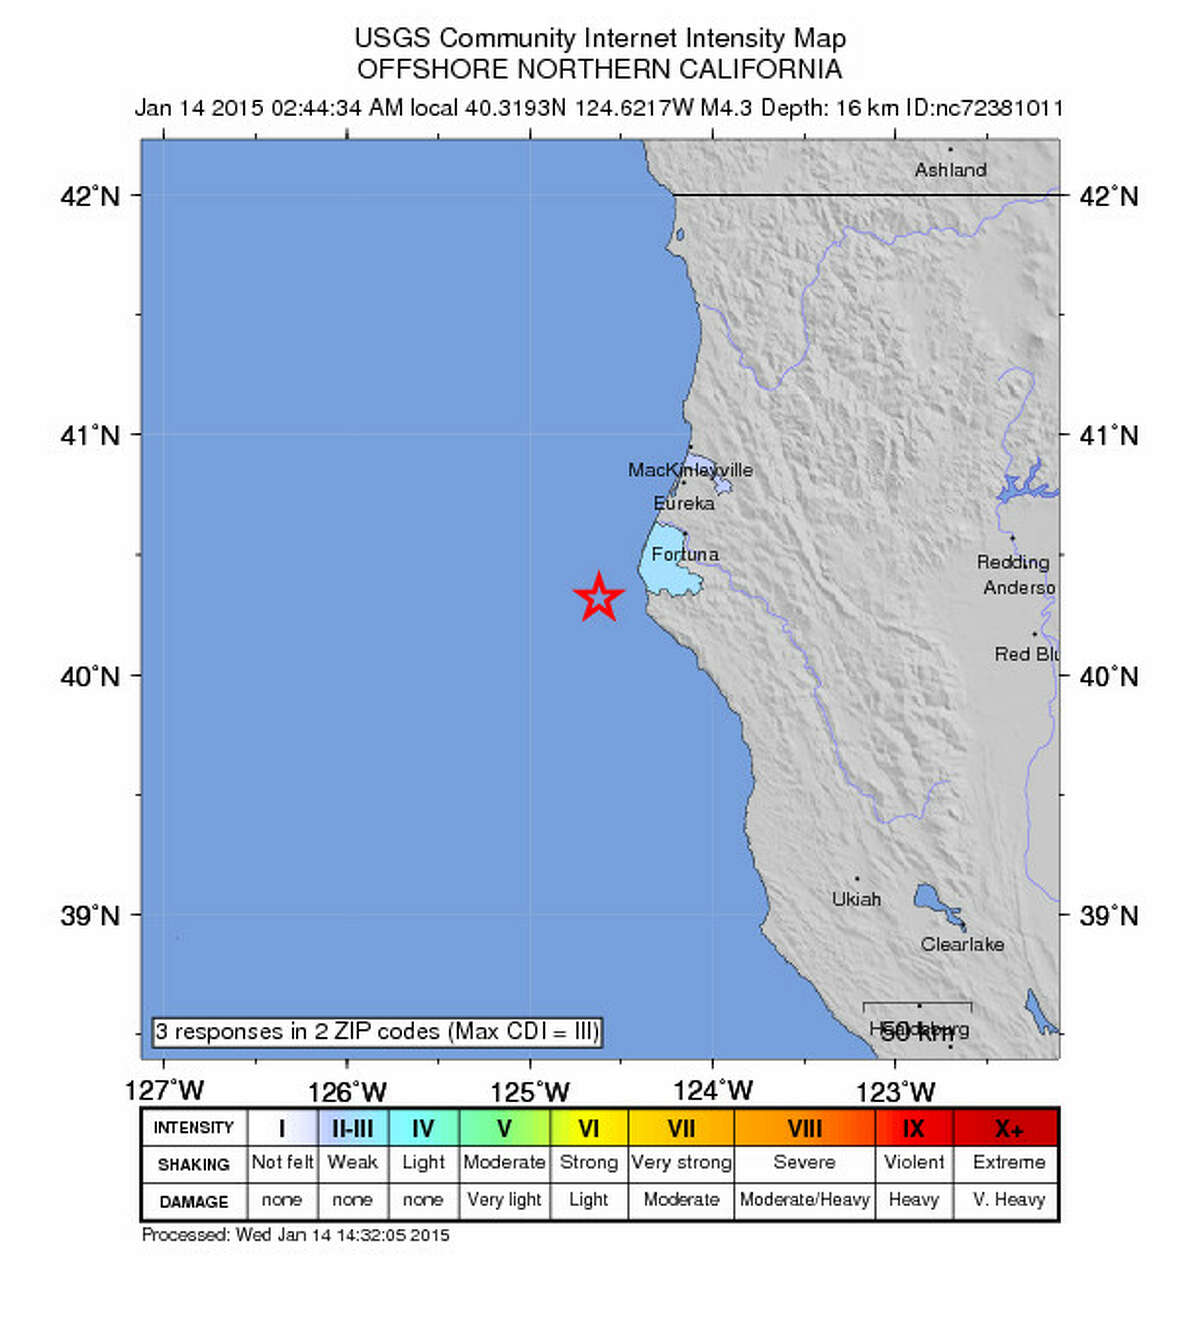 A magnitude 4.3 earthquake struck just off the cost of Ferndale, Calif. early this morning.